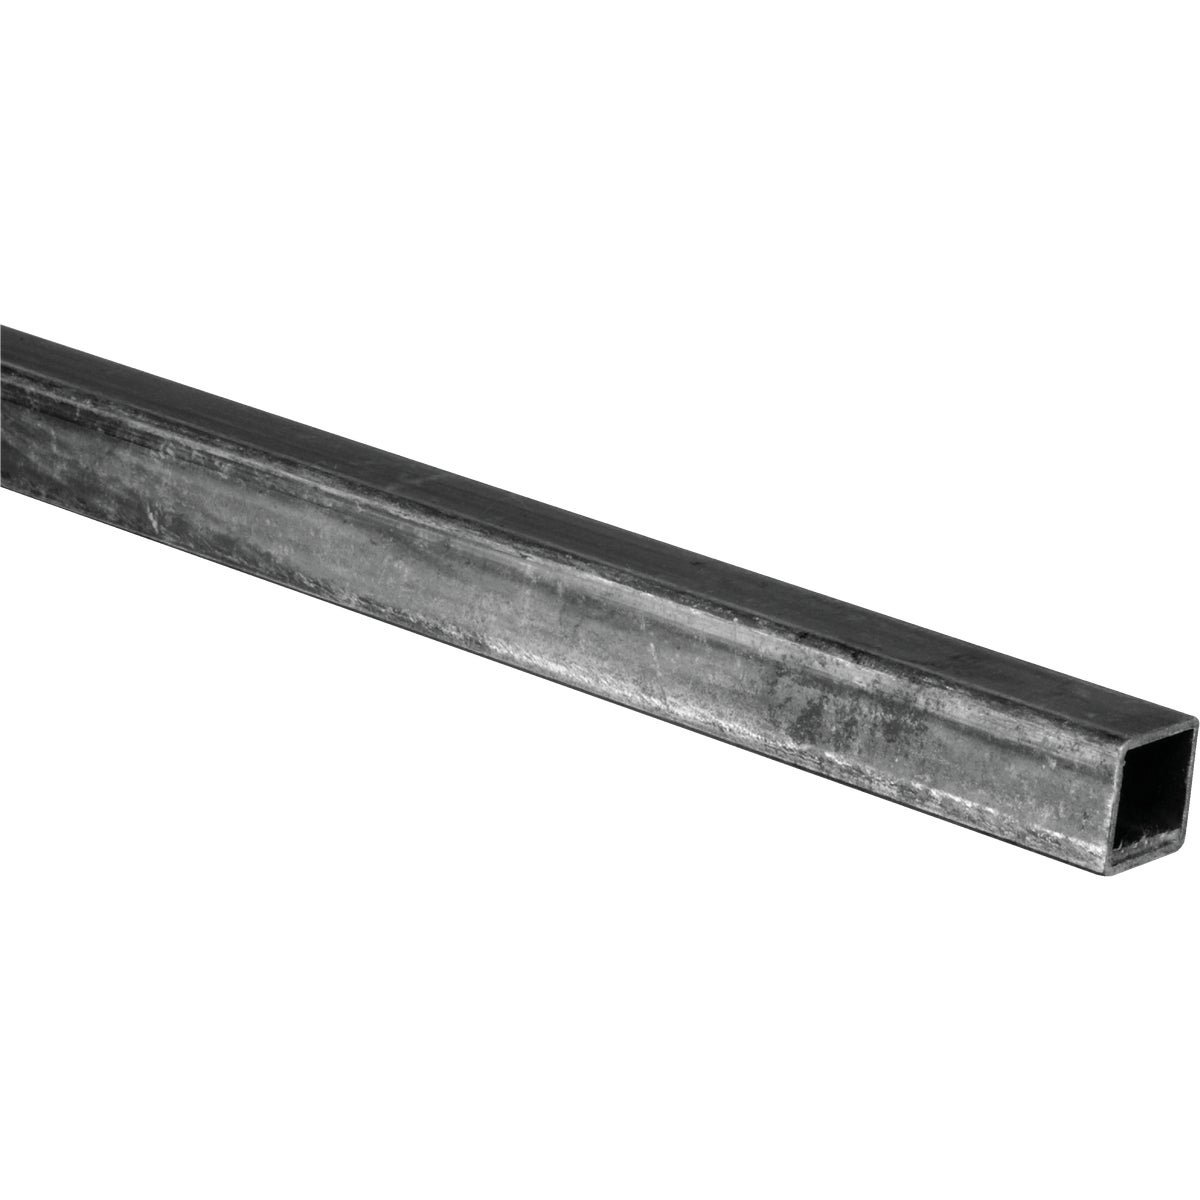 1X3' SQUARE TUBE - N341446 by National Mfg Co